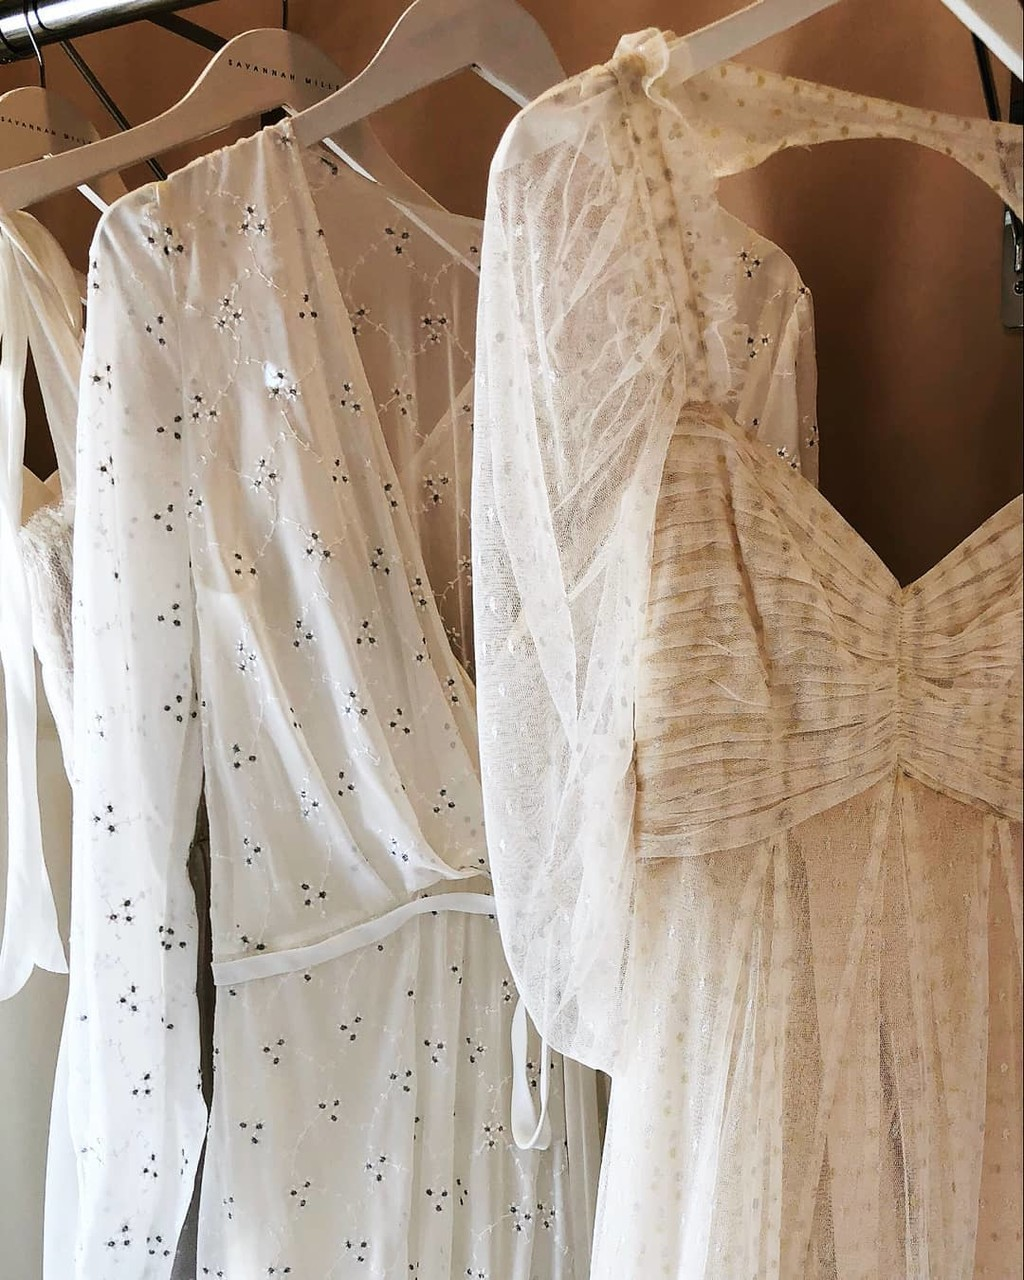 Finding the right wedding dress is not as simple as people think, but our stylists want to guide you to THE gown. We'll help you